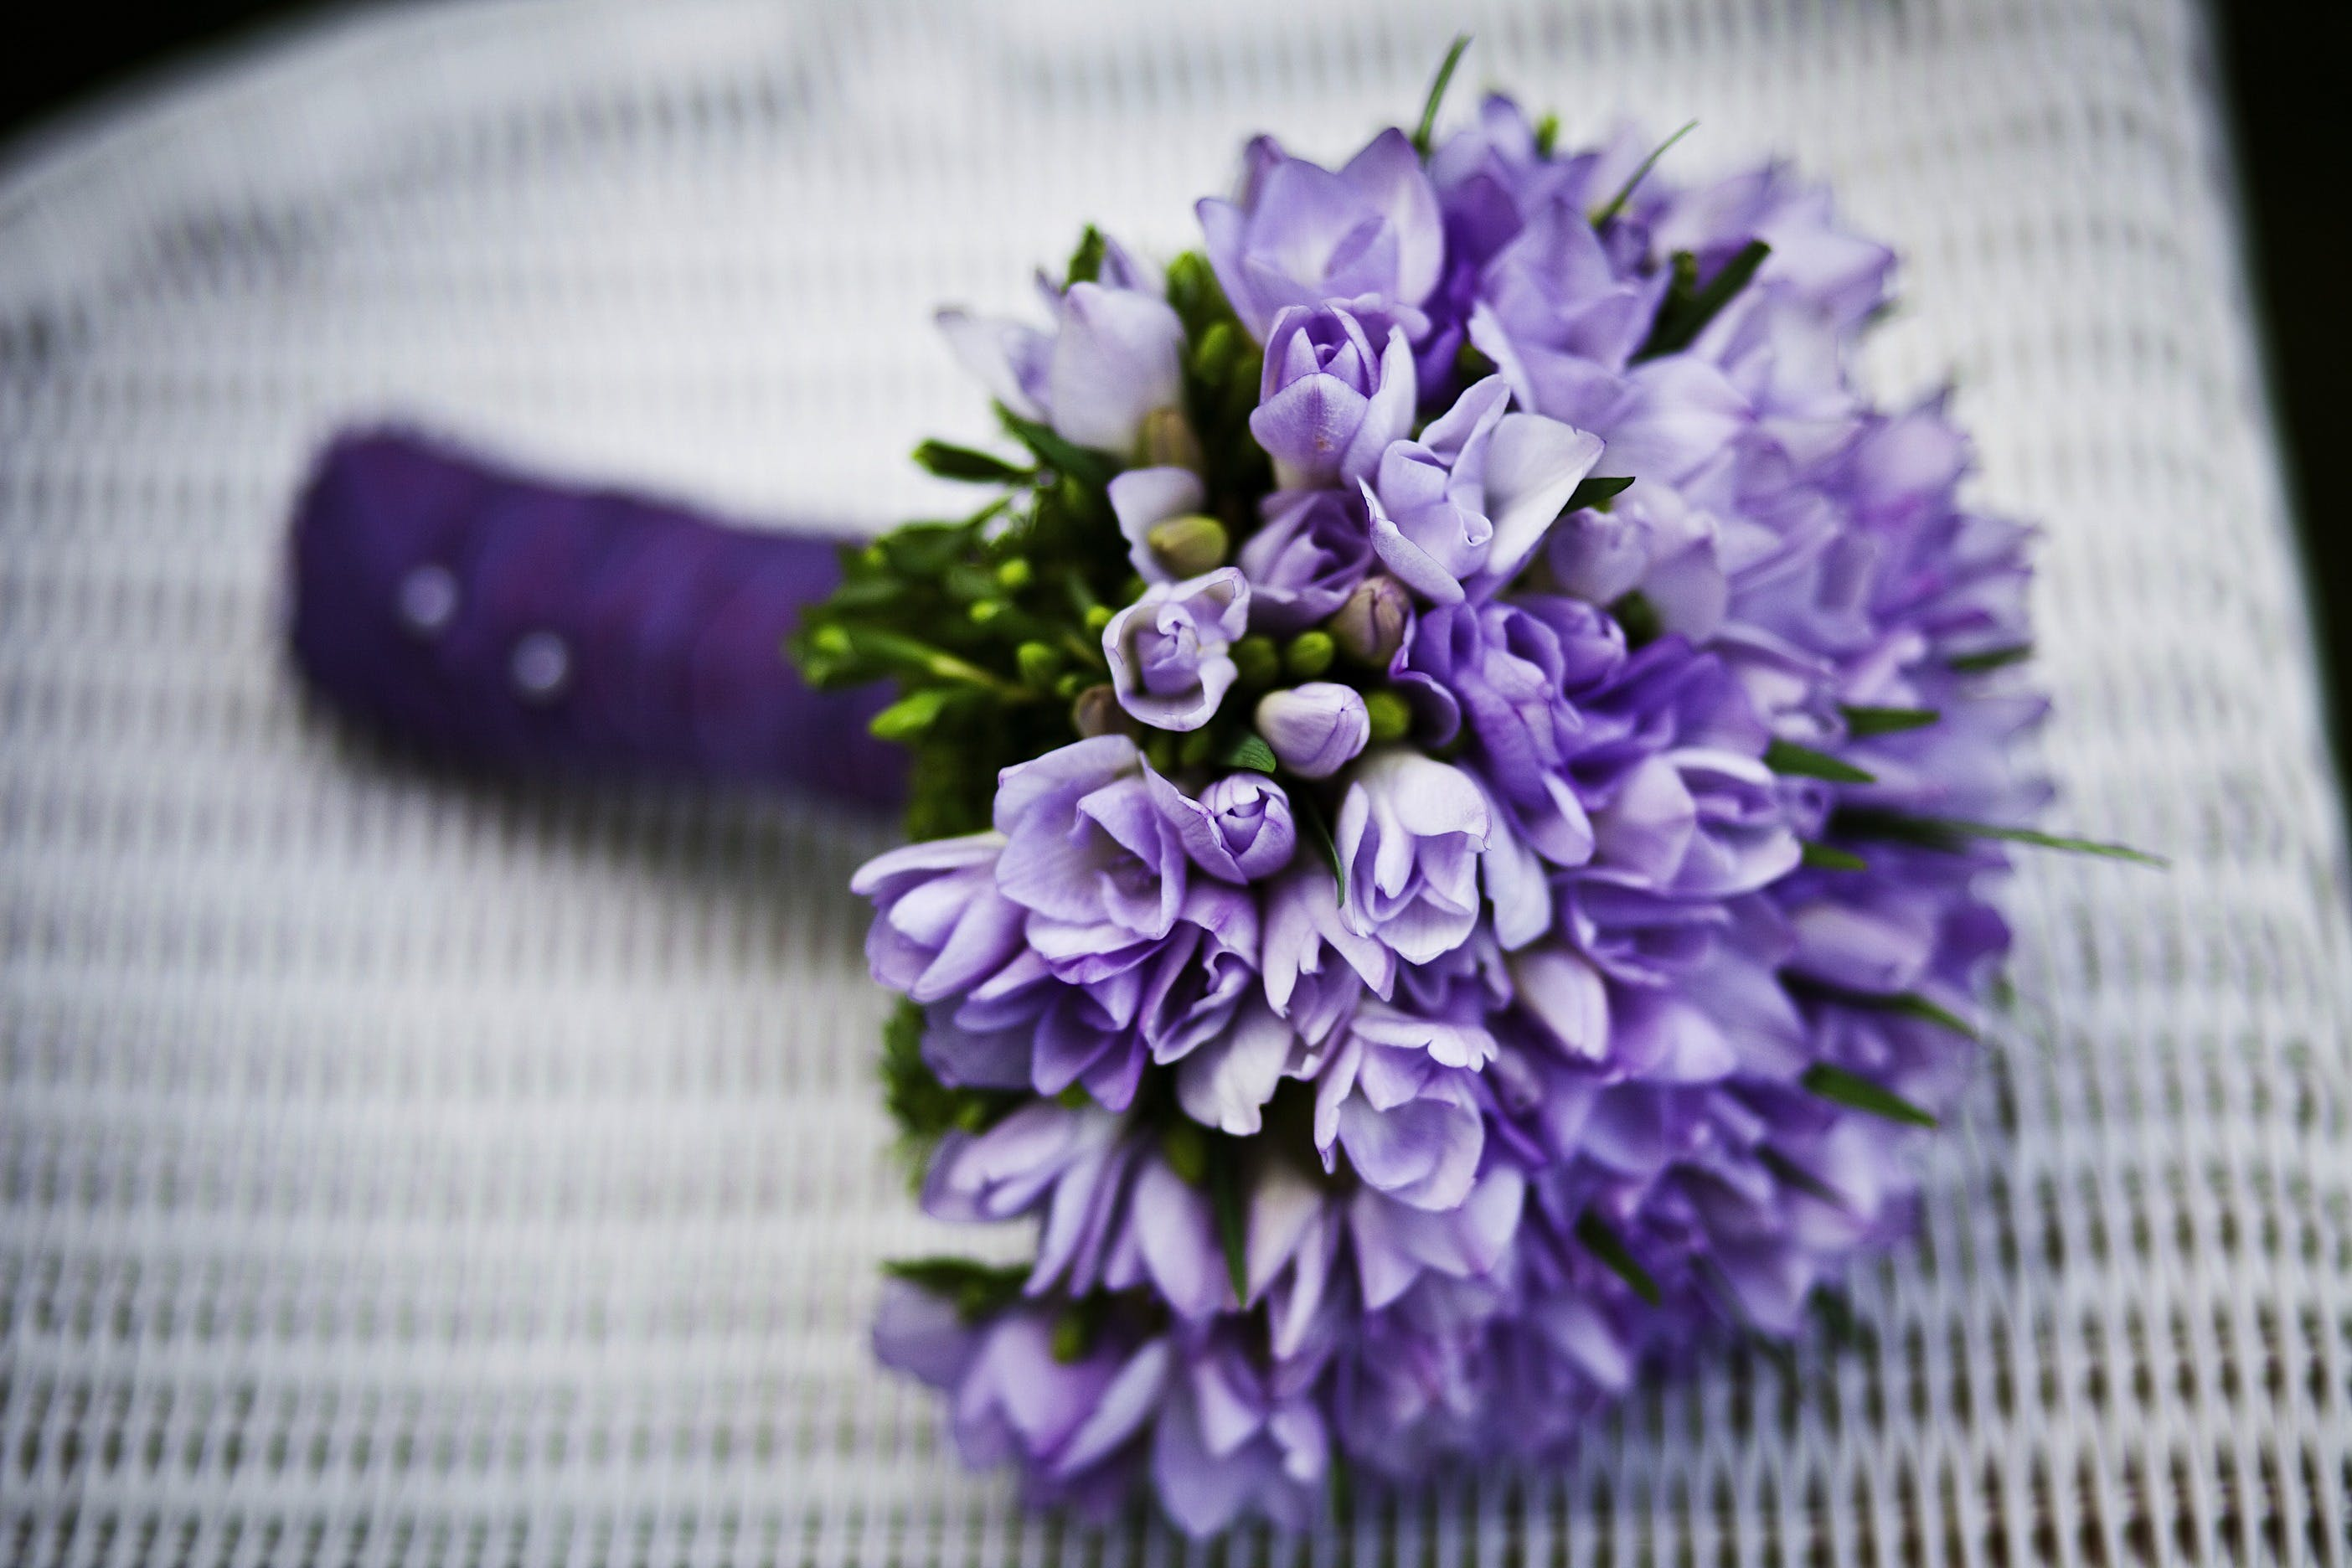 Purple Flower Bouquet on White Woven Chair